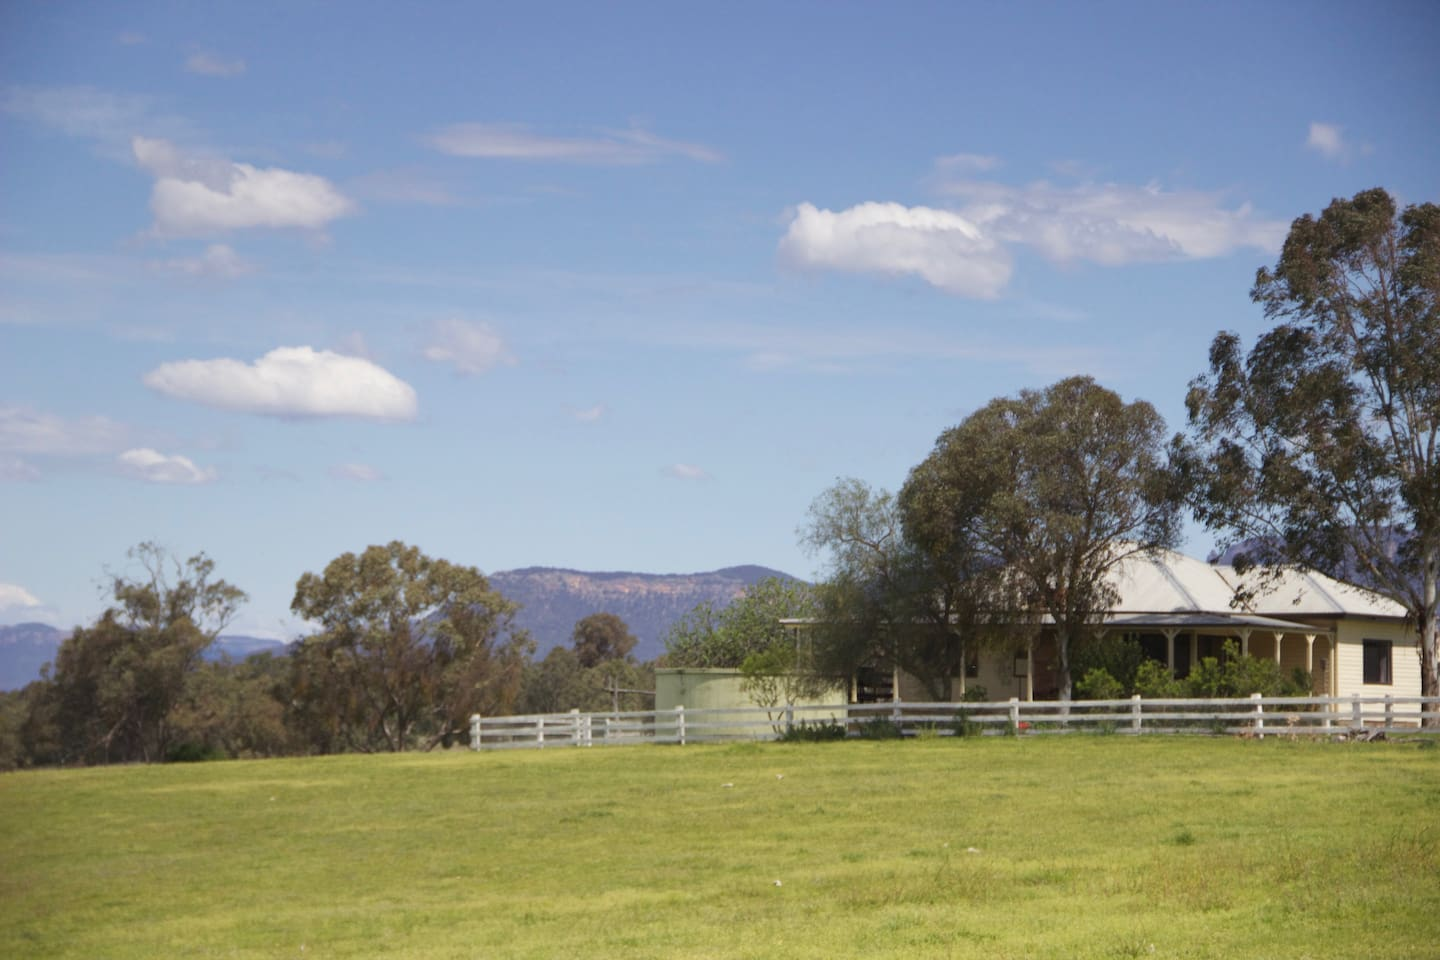 The house is set back about 100 metres from the front gate. There are lovely views from the verandas.